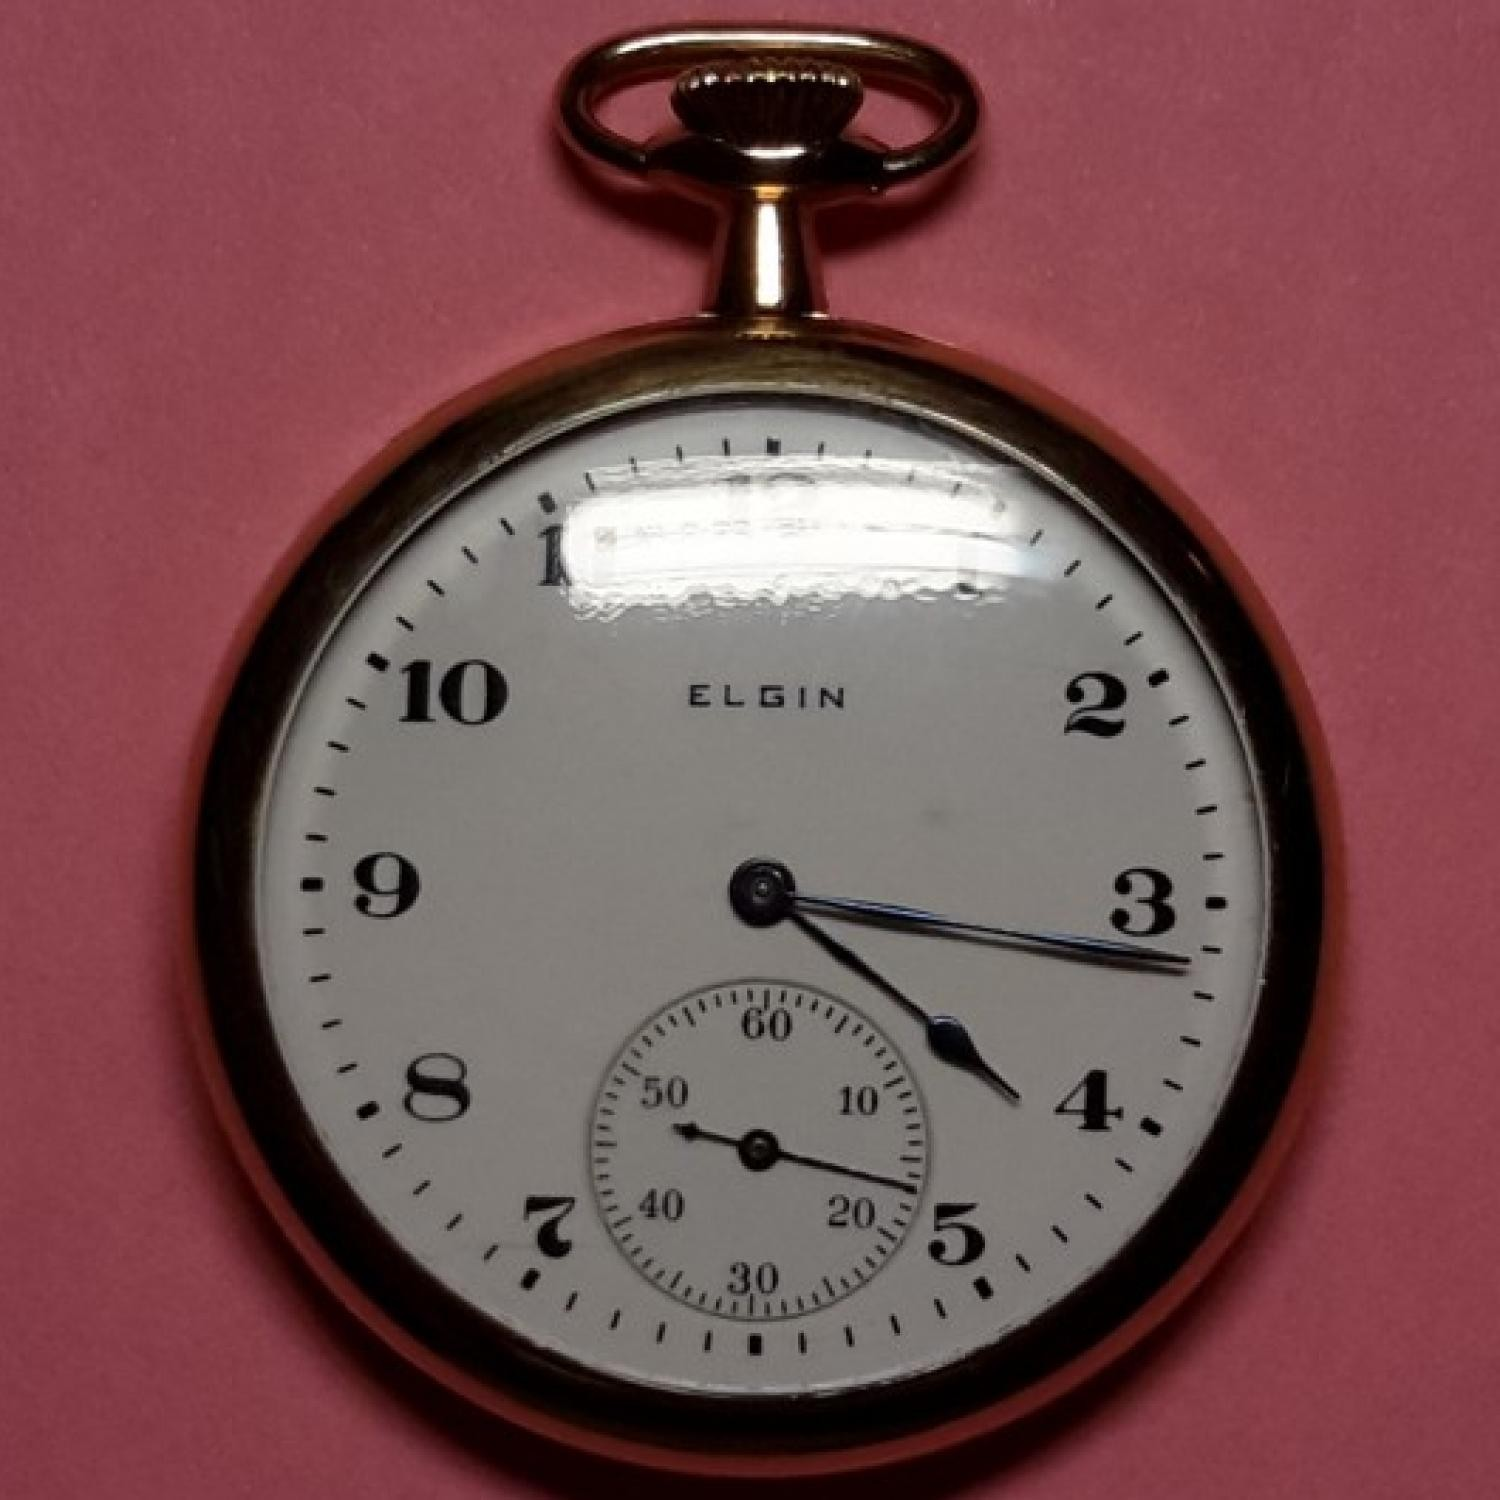 Image of Elgin 303 #20004769 Dial